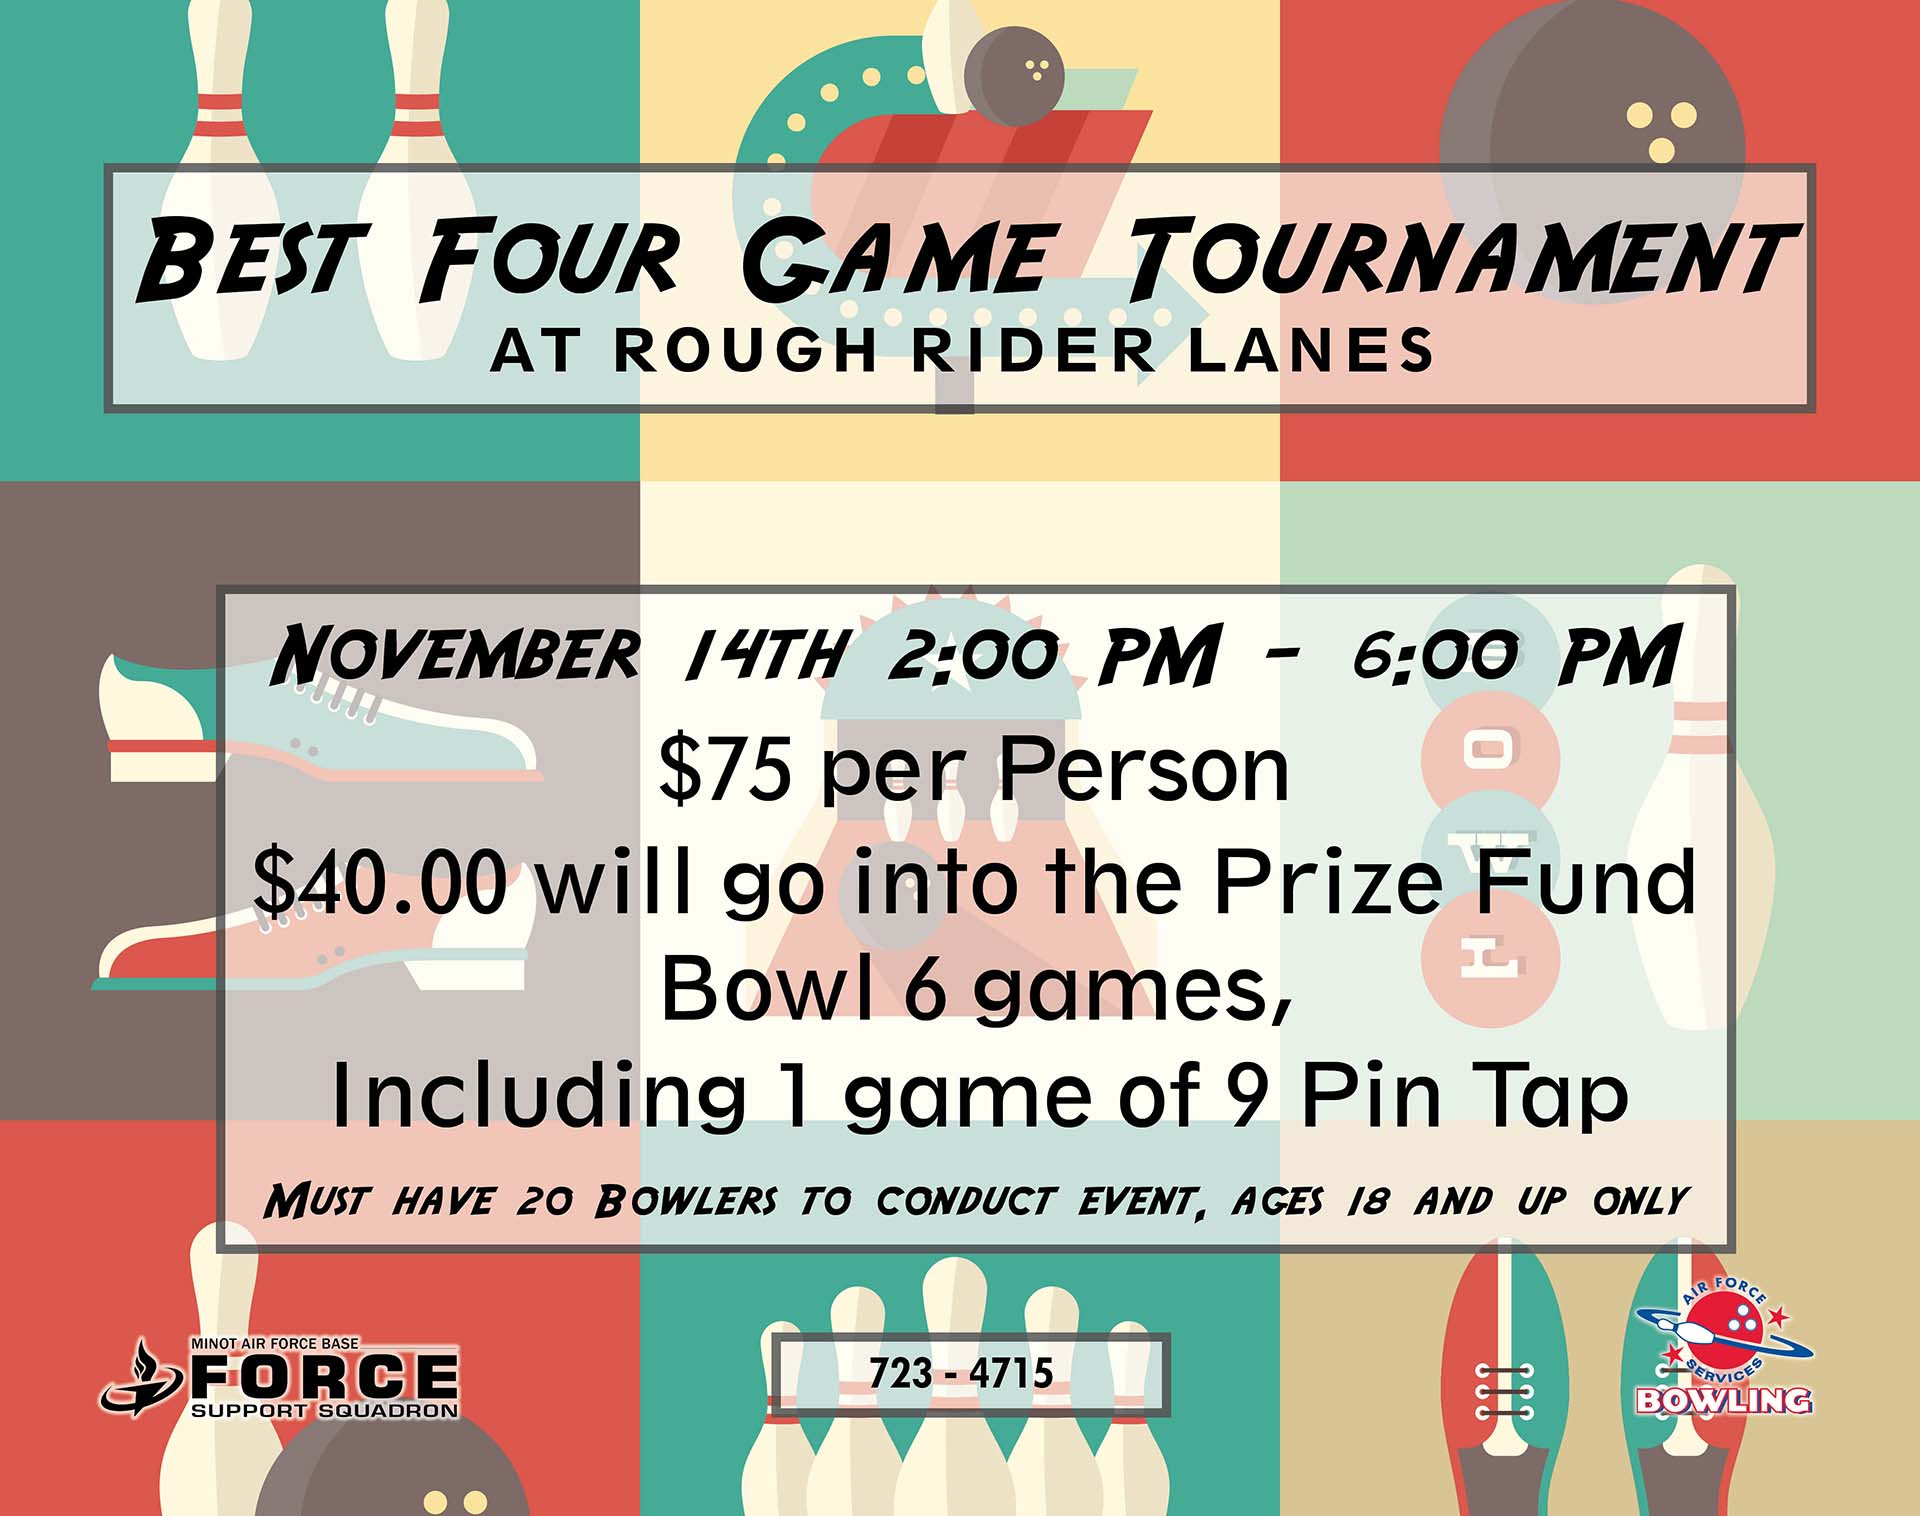 Registration Closes: Best 4 Game Tournament